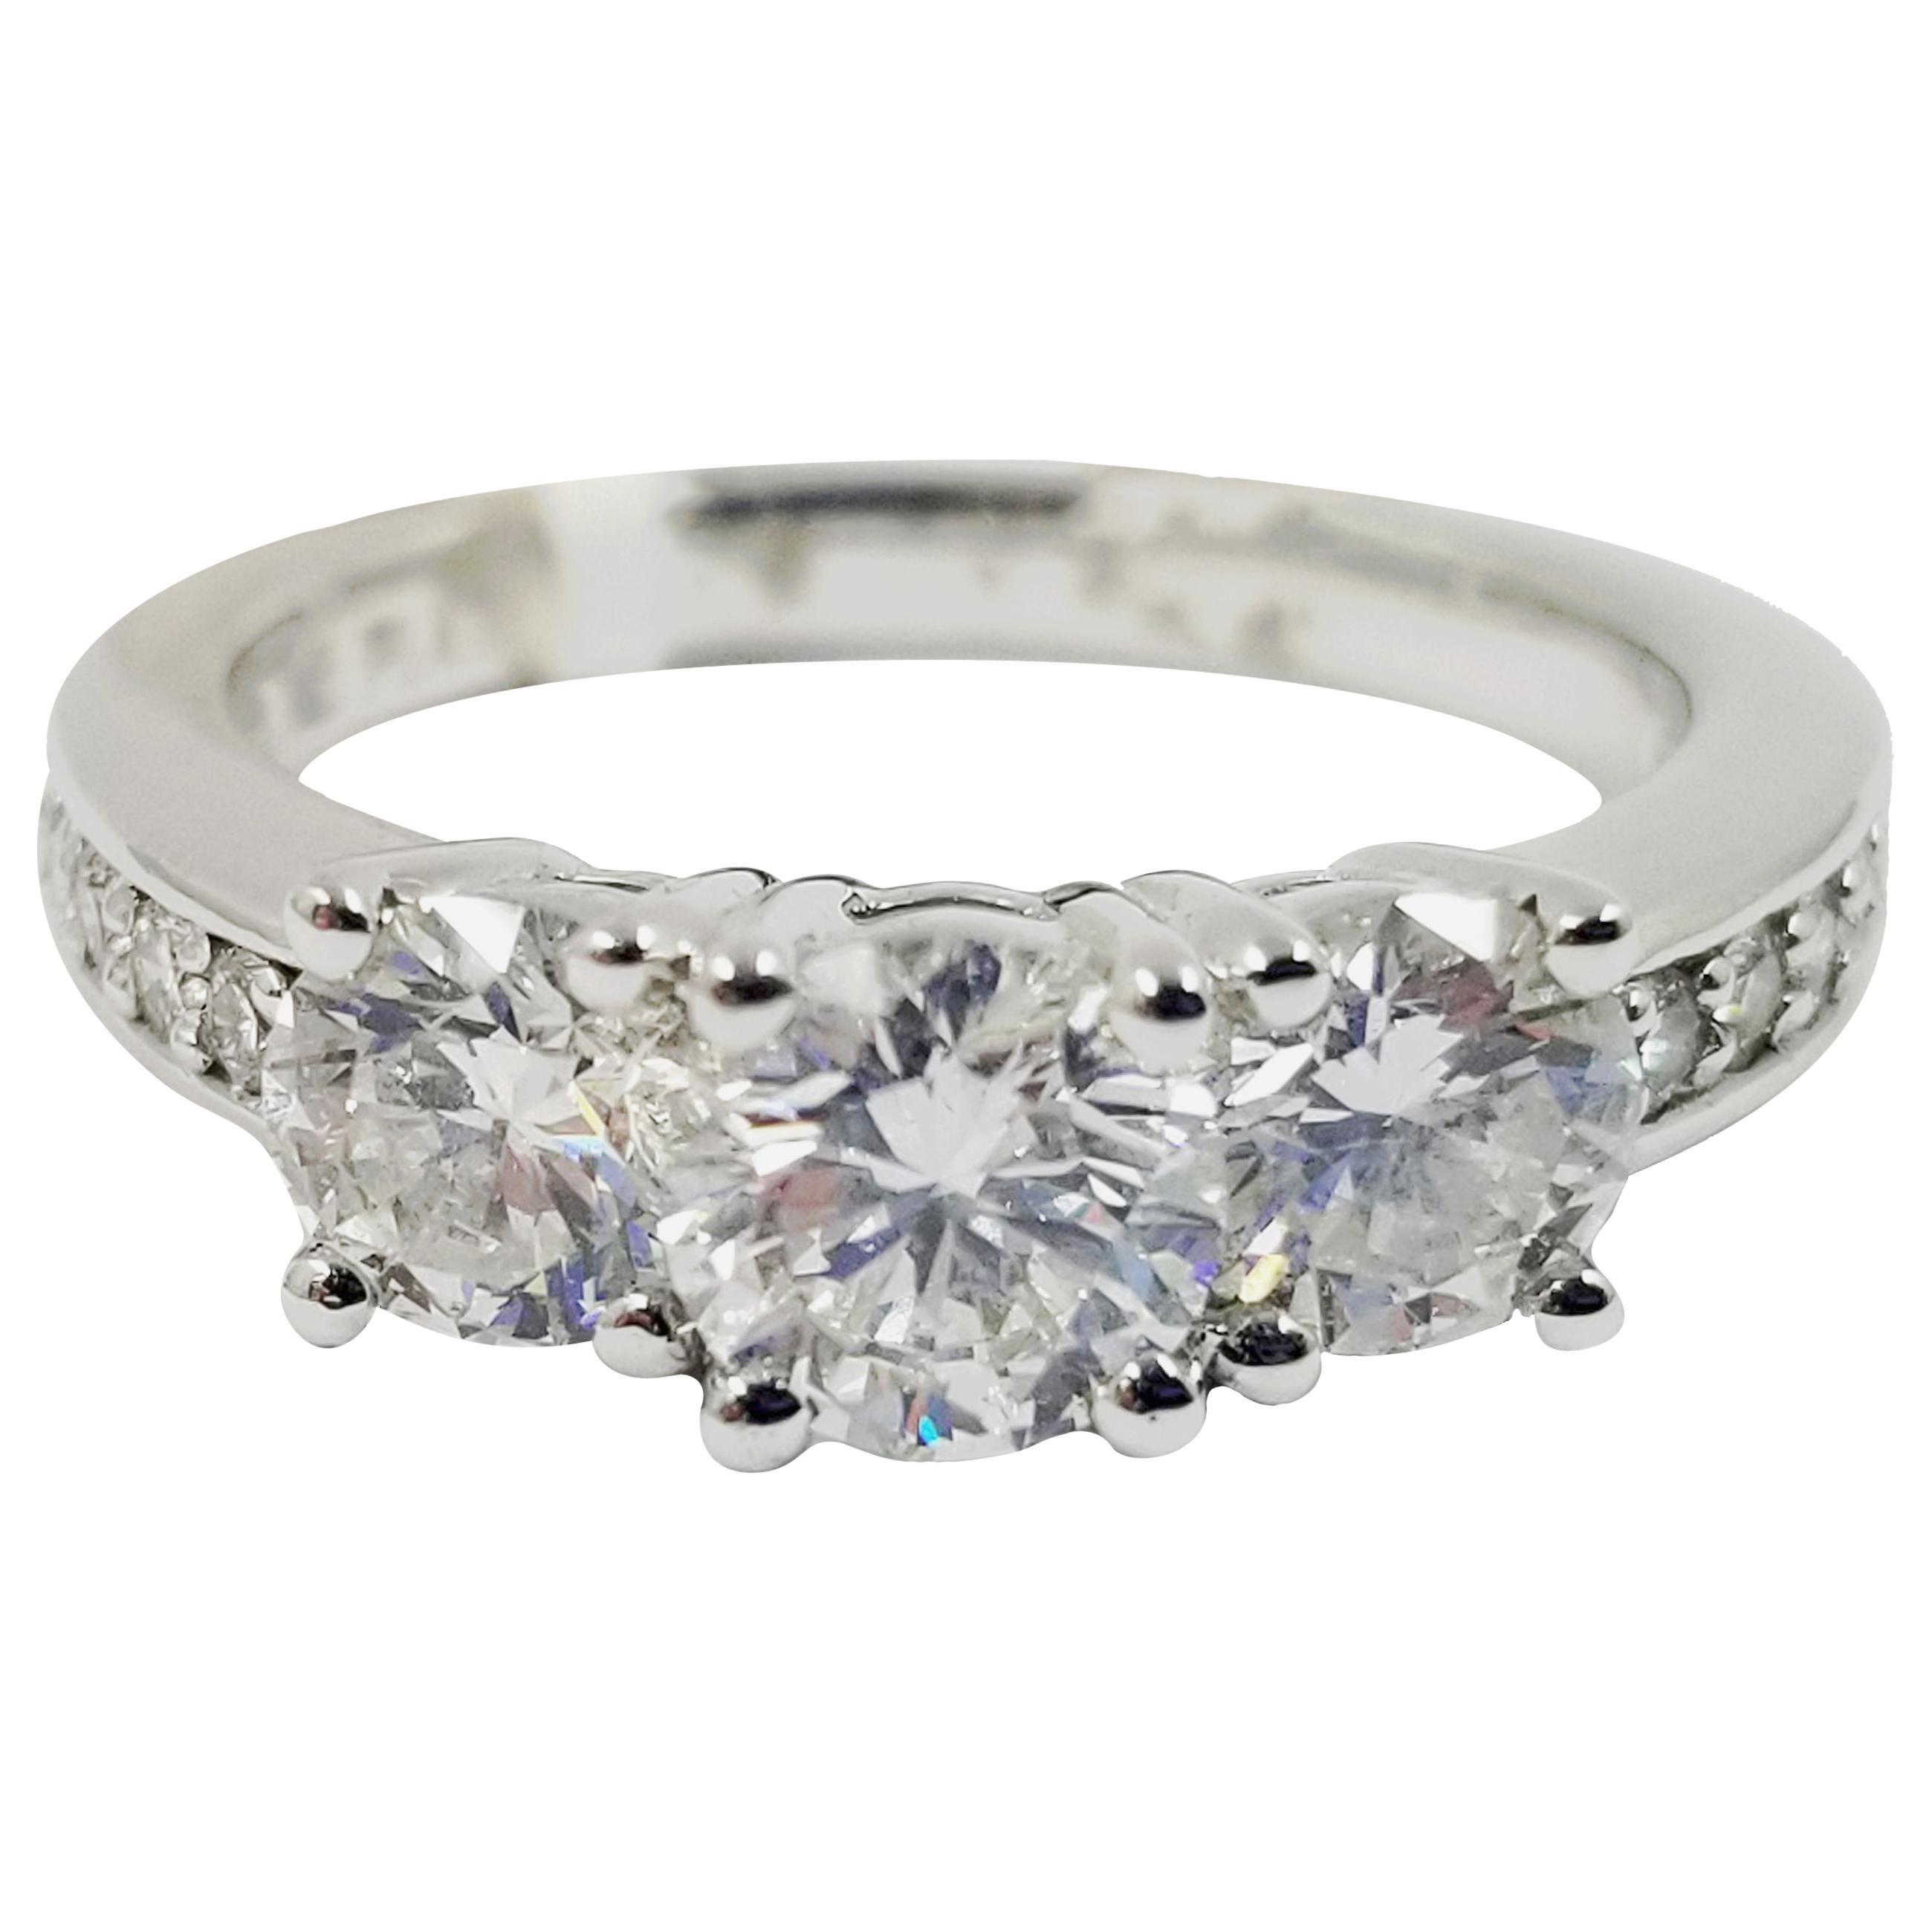 Three-Stone Diamond Ring with Accents